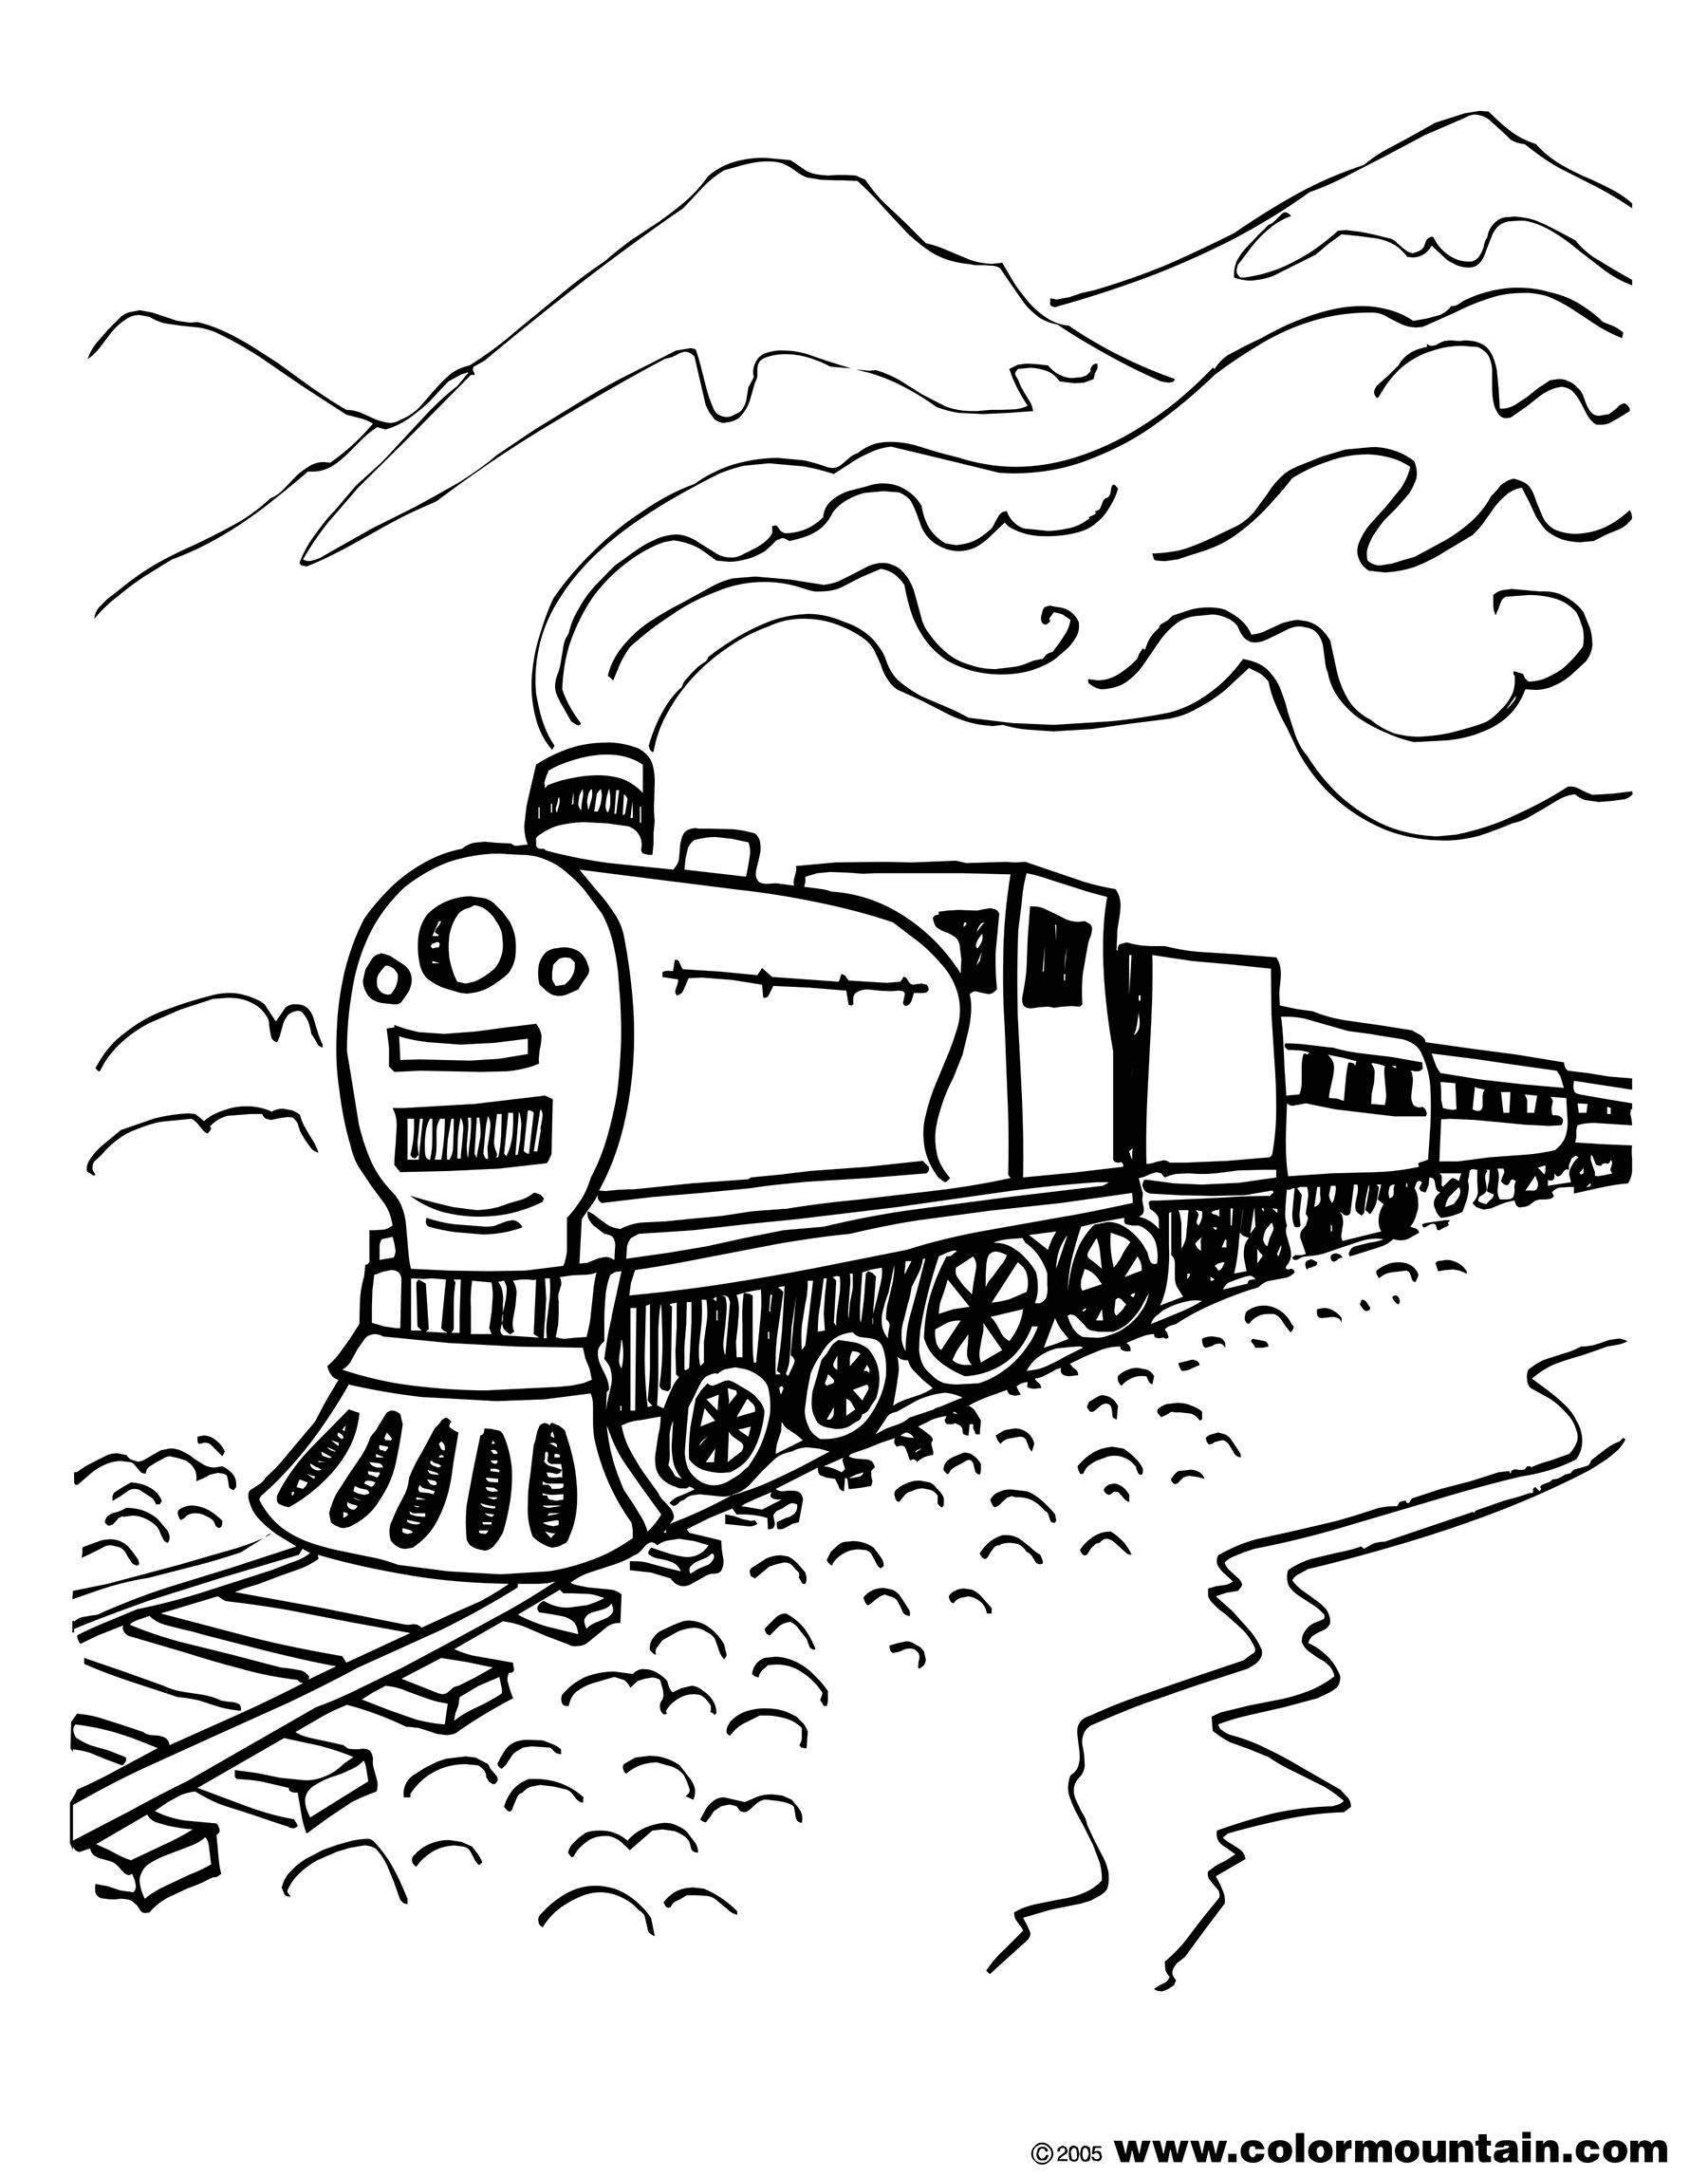 Steam Locomotive Drawing at GetDrawings.com | Free for personal use ...